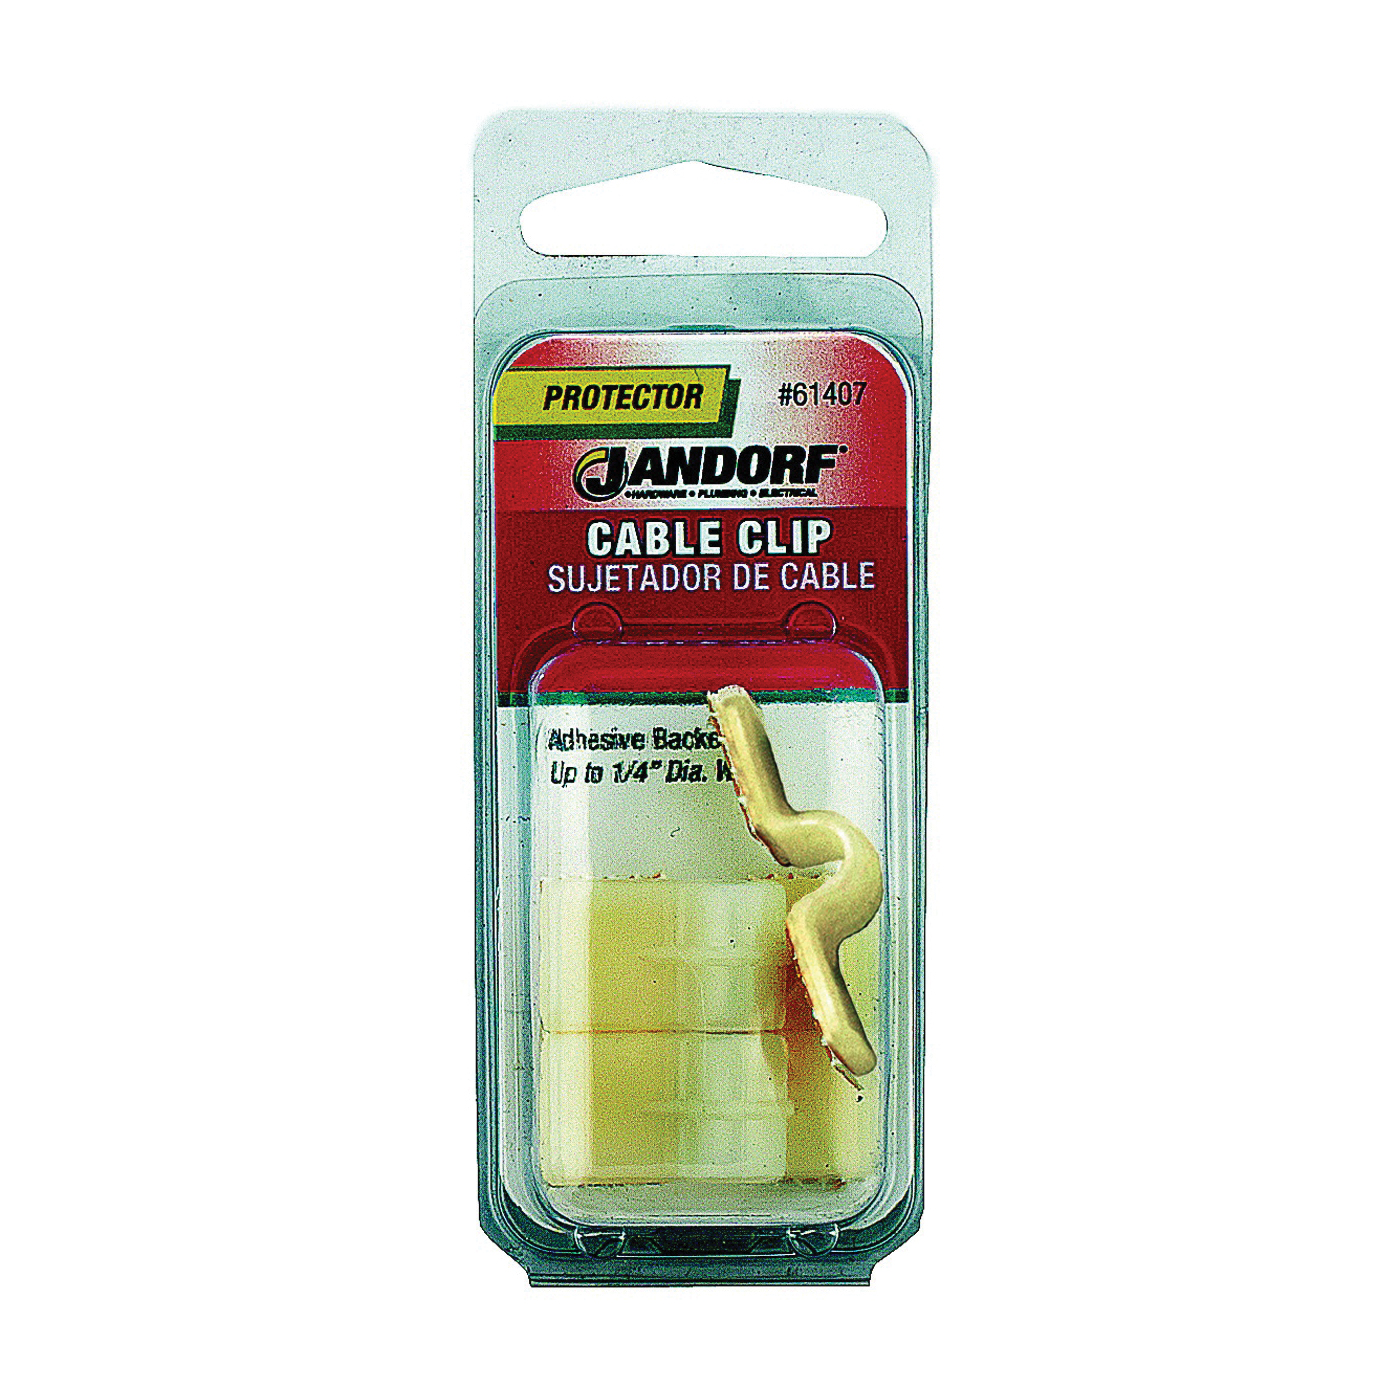 Picture of Jandorf 61407 Cable Clip, Nylon, Natural